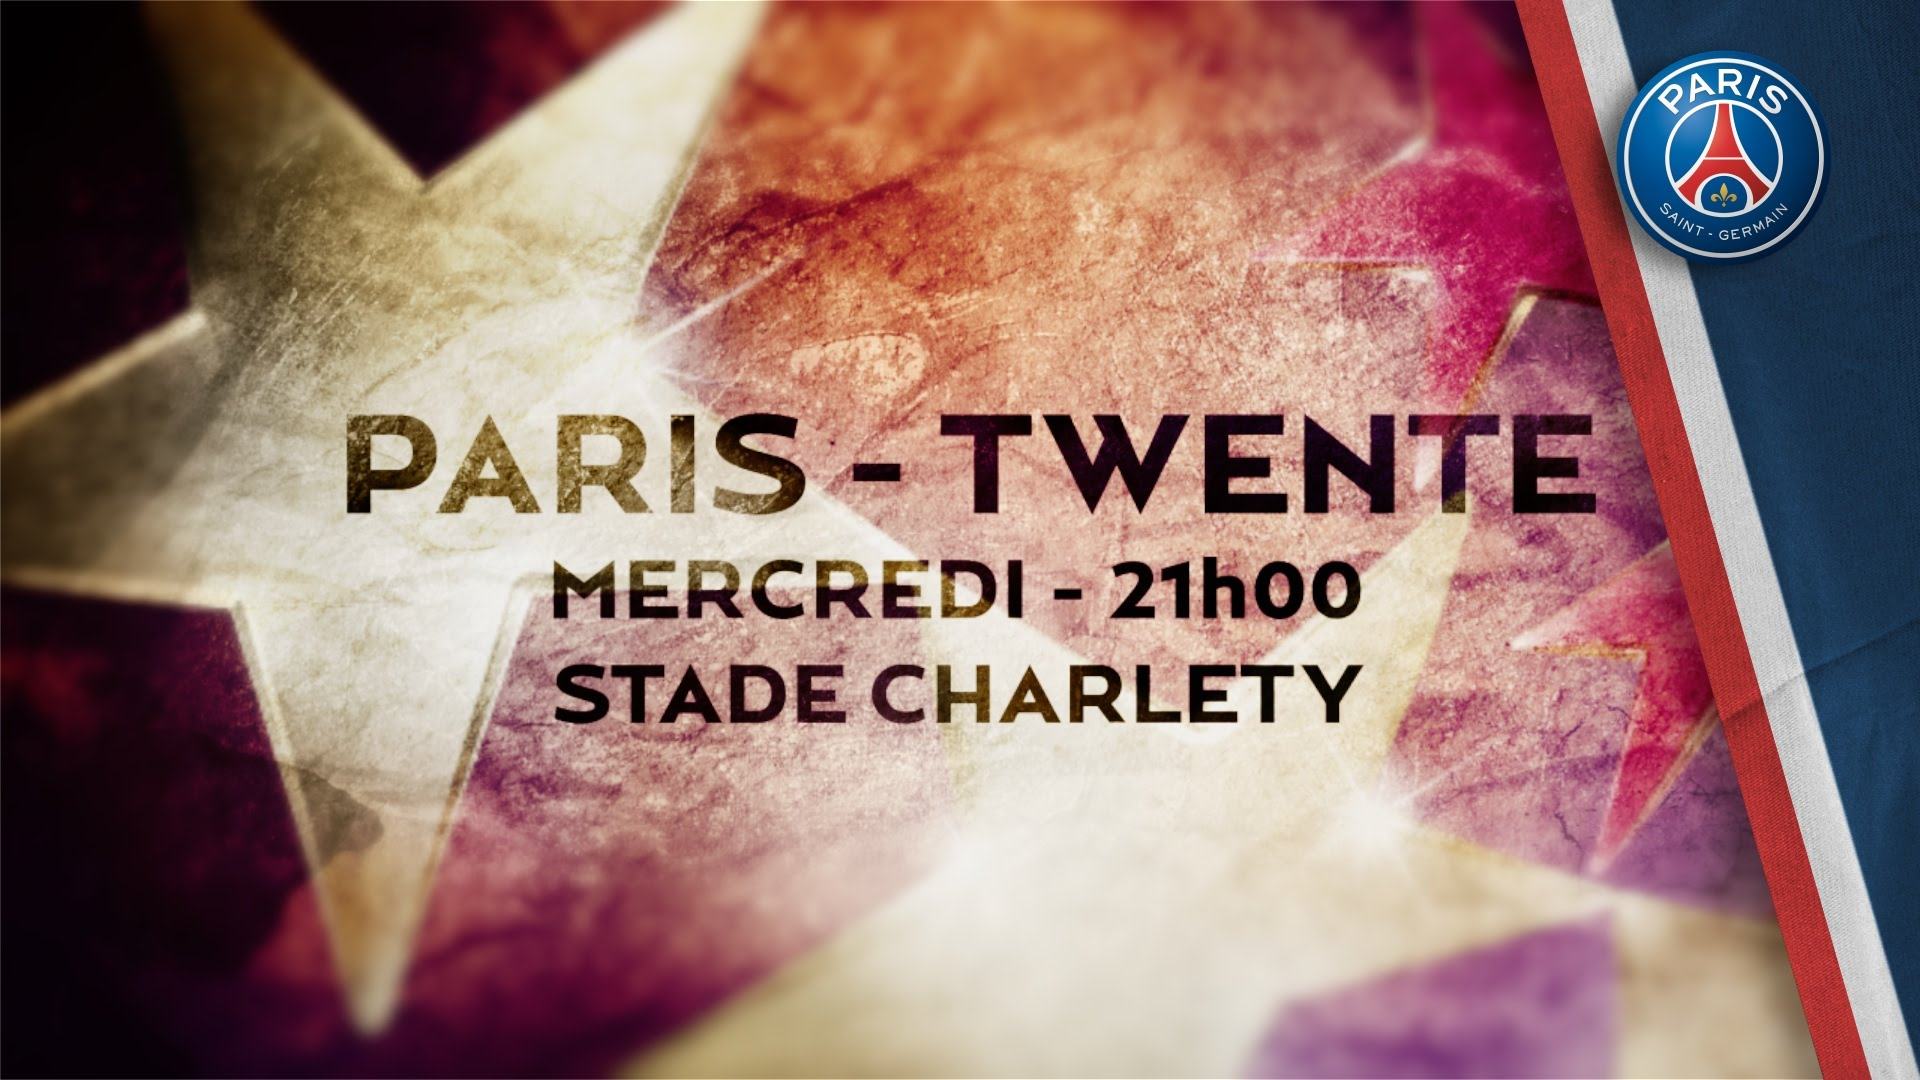 TRAILER PARIS vs TWENTE